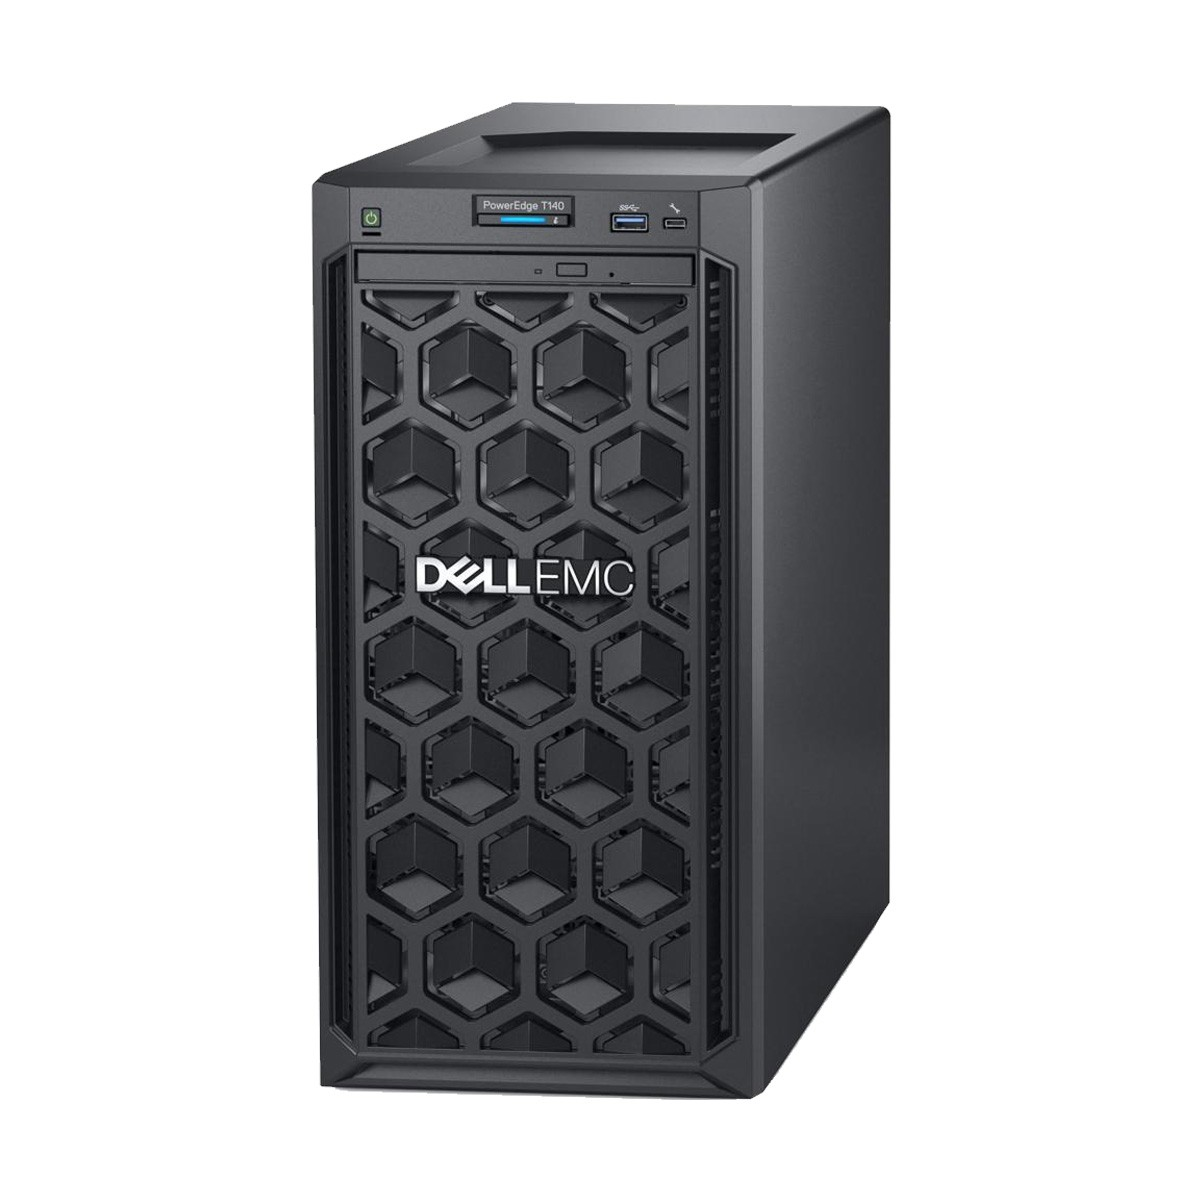 Dell EMC PowerEdge T140 16GB Tower Server